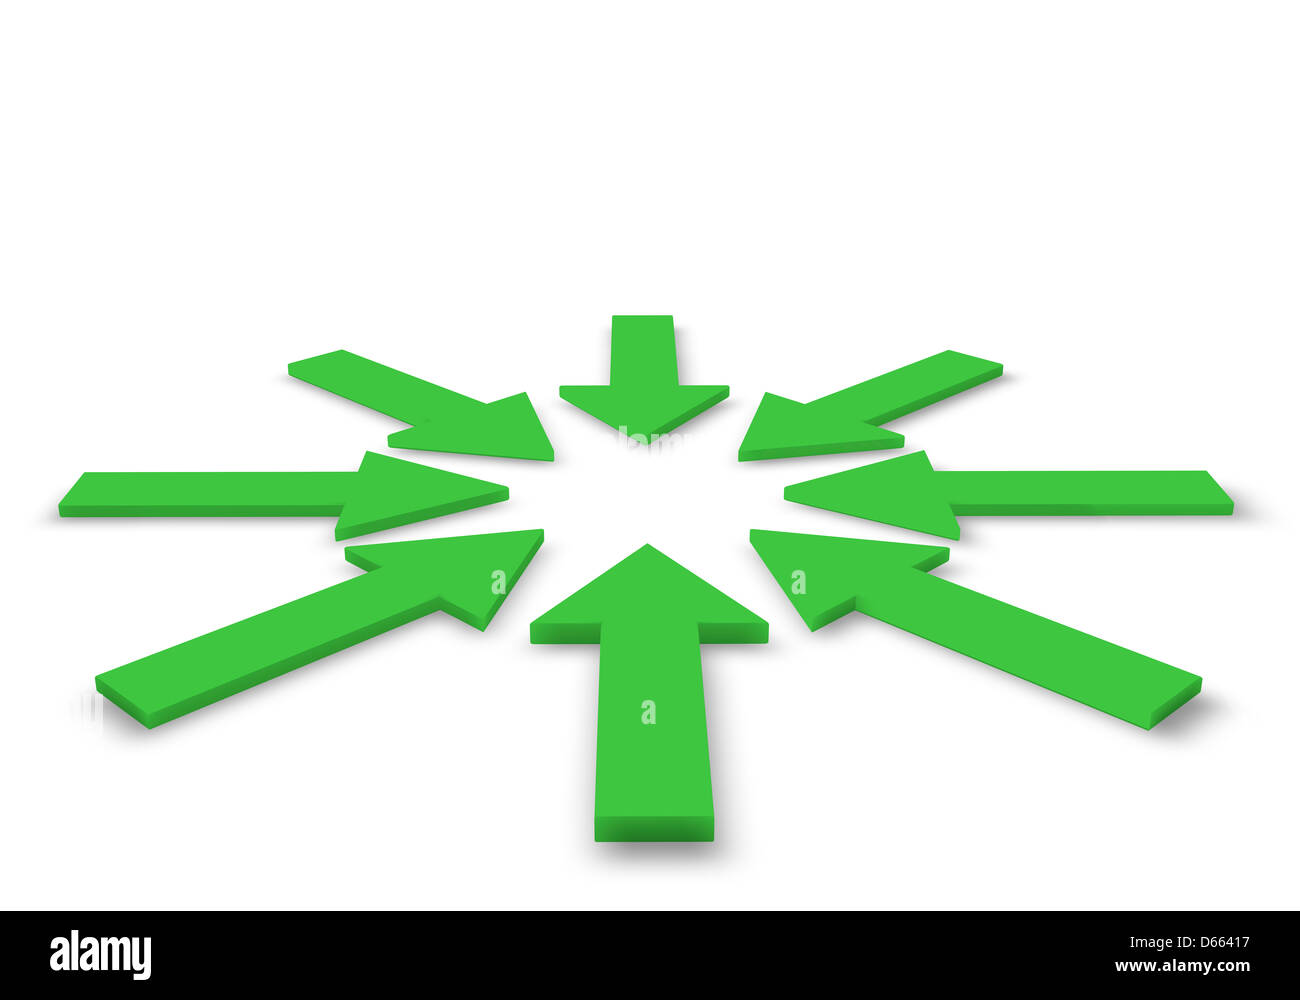 Green arrows in 3D illustration - Stock Image